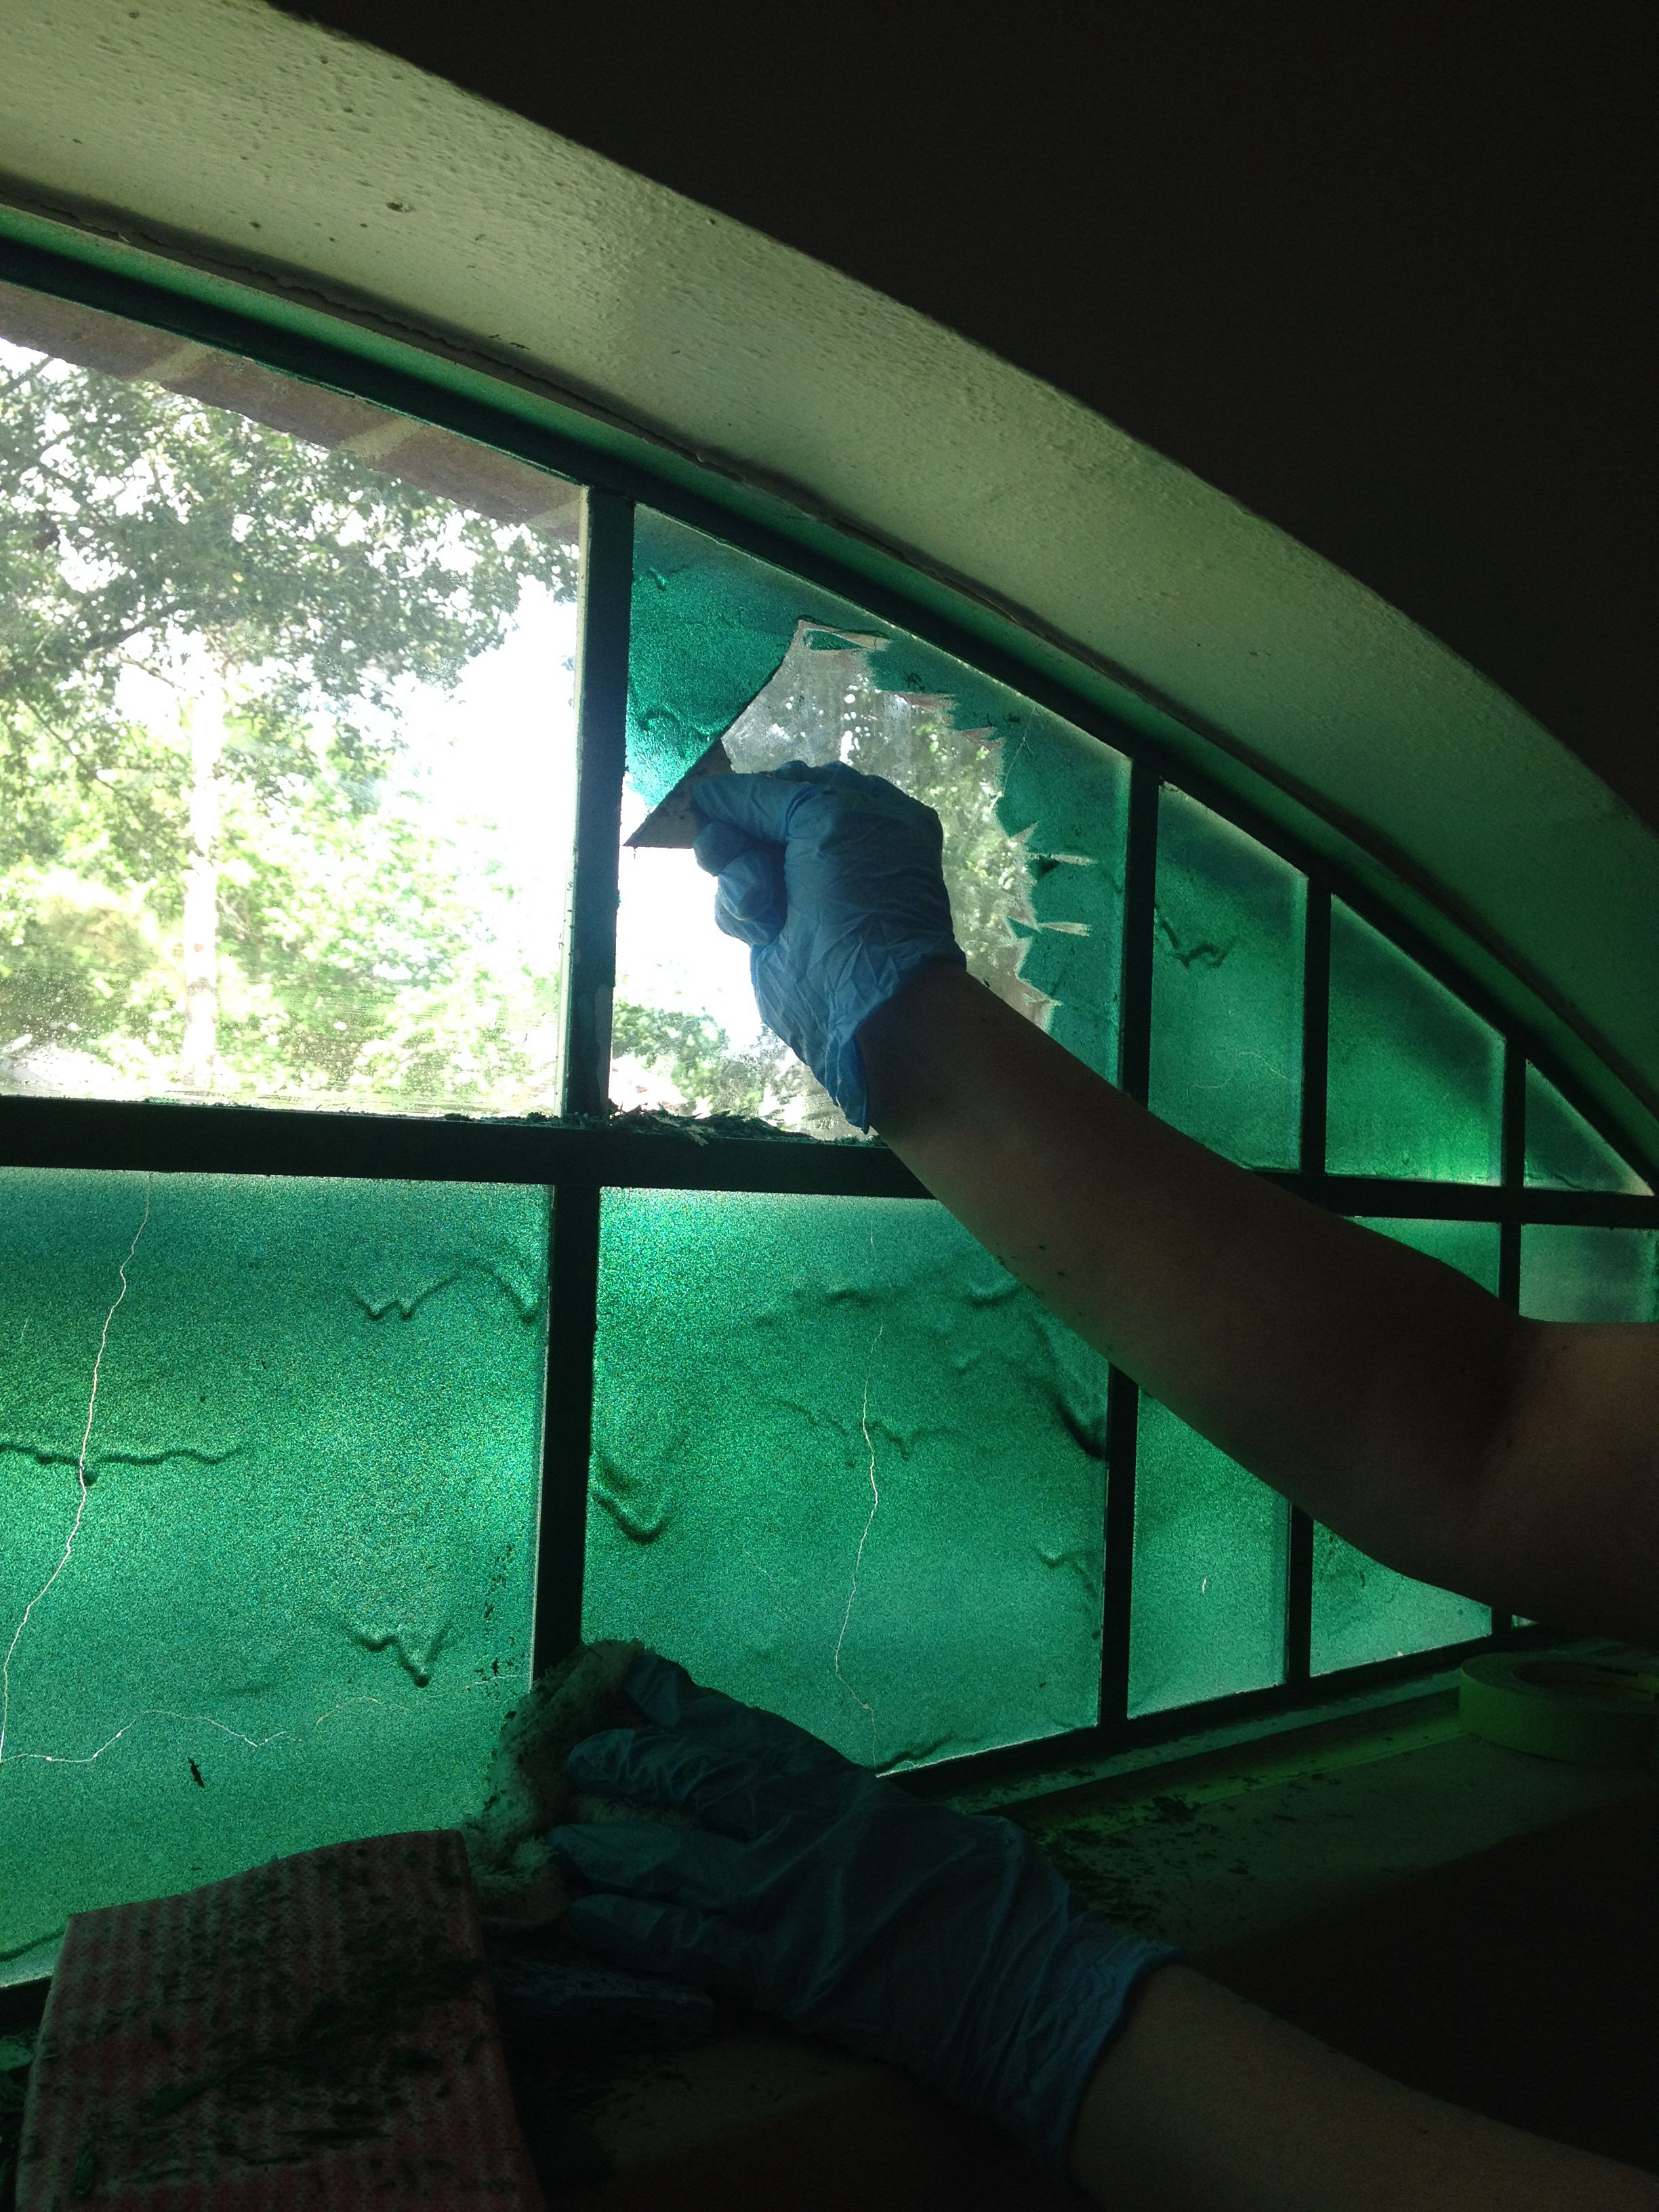 How To Remove Paint From A Glass Window Spray Googone Found At Home Depot Onto The Glass Window Th Remove Paint From Glass Paint Remover How To Clean Carpet